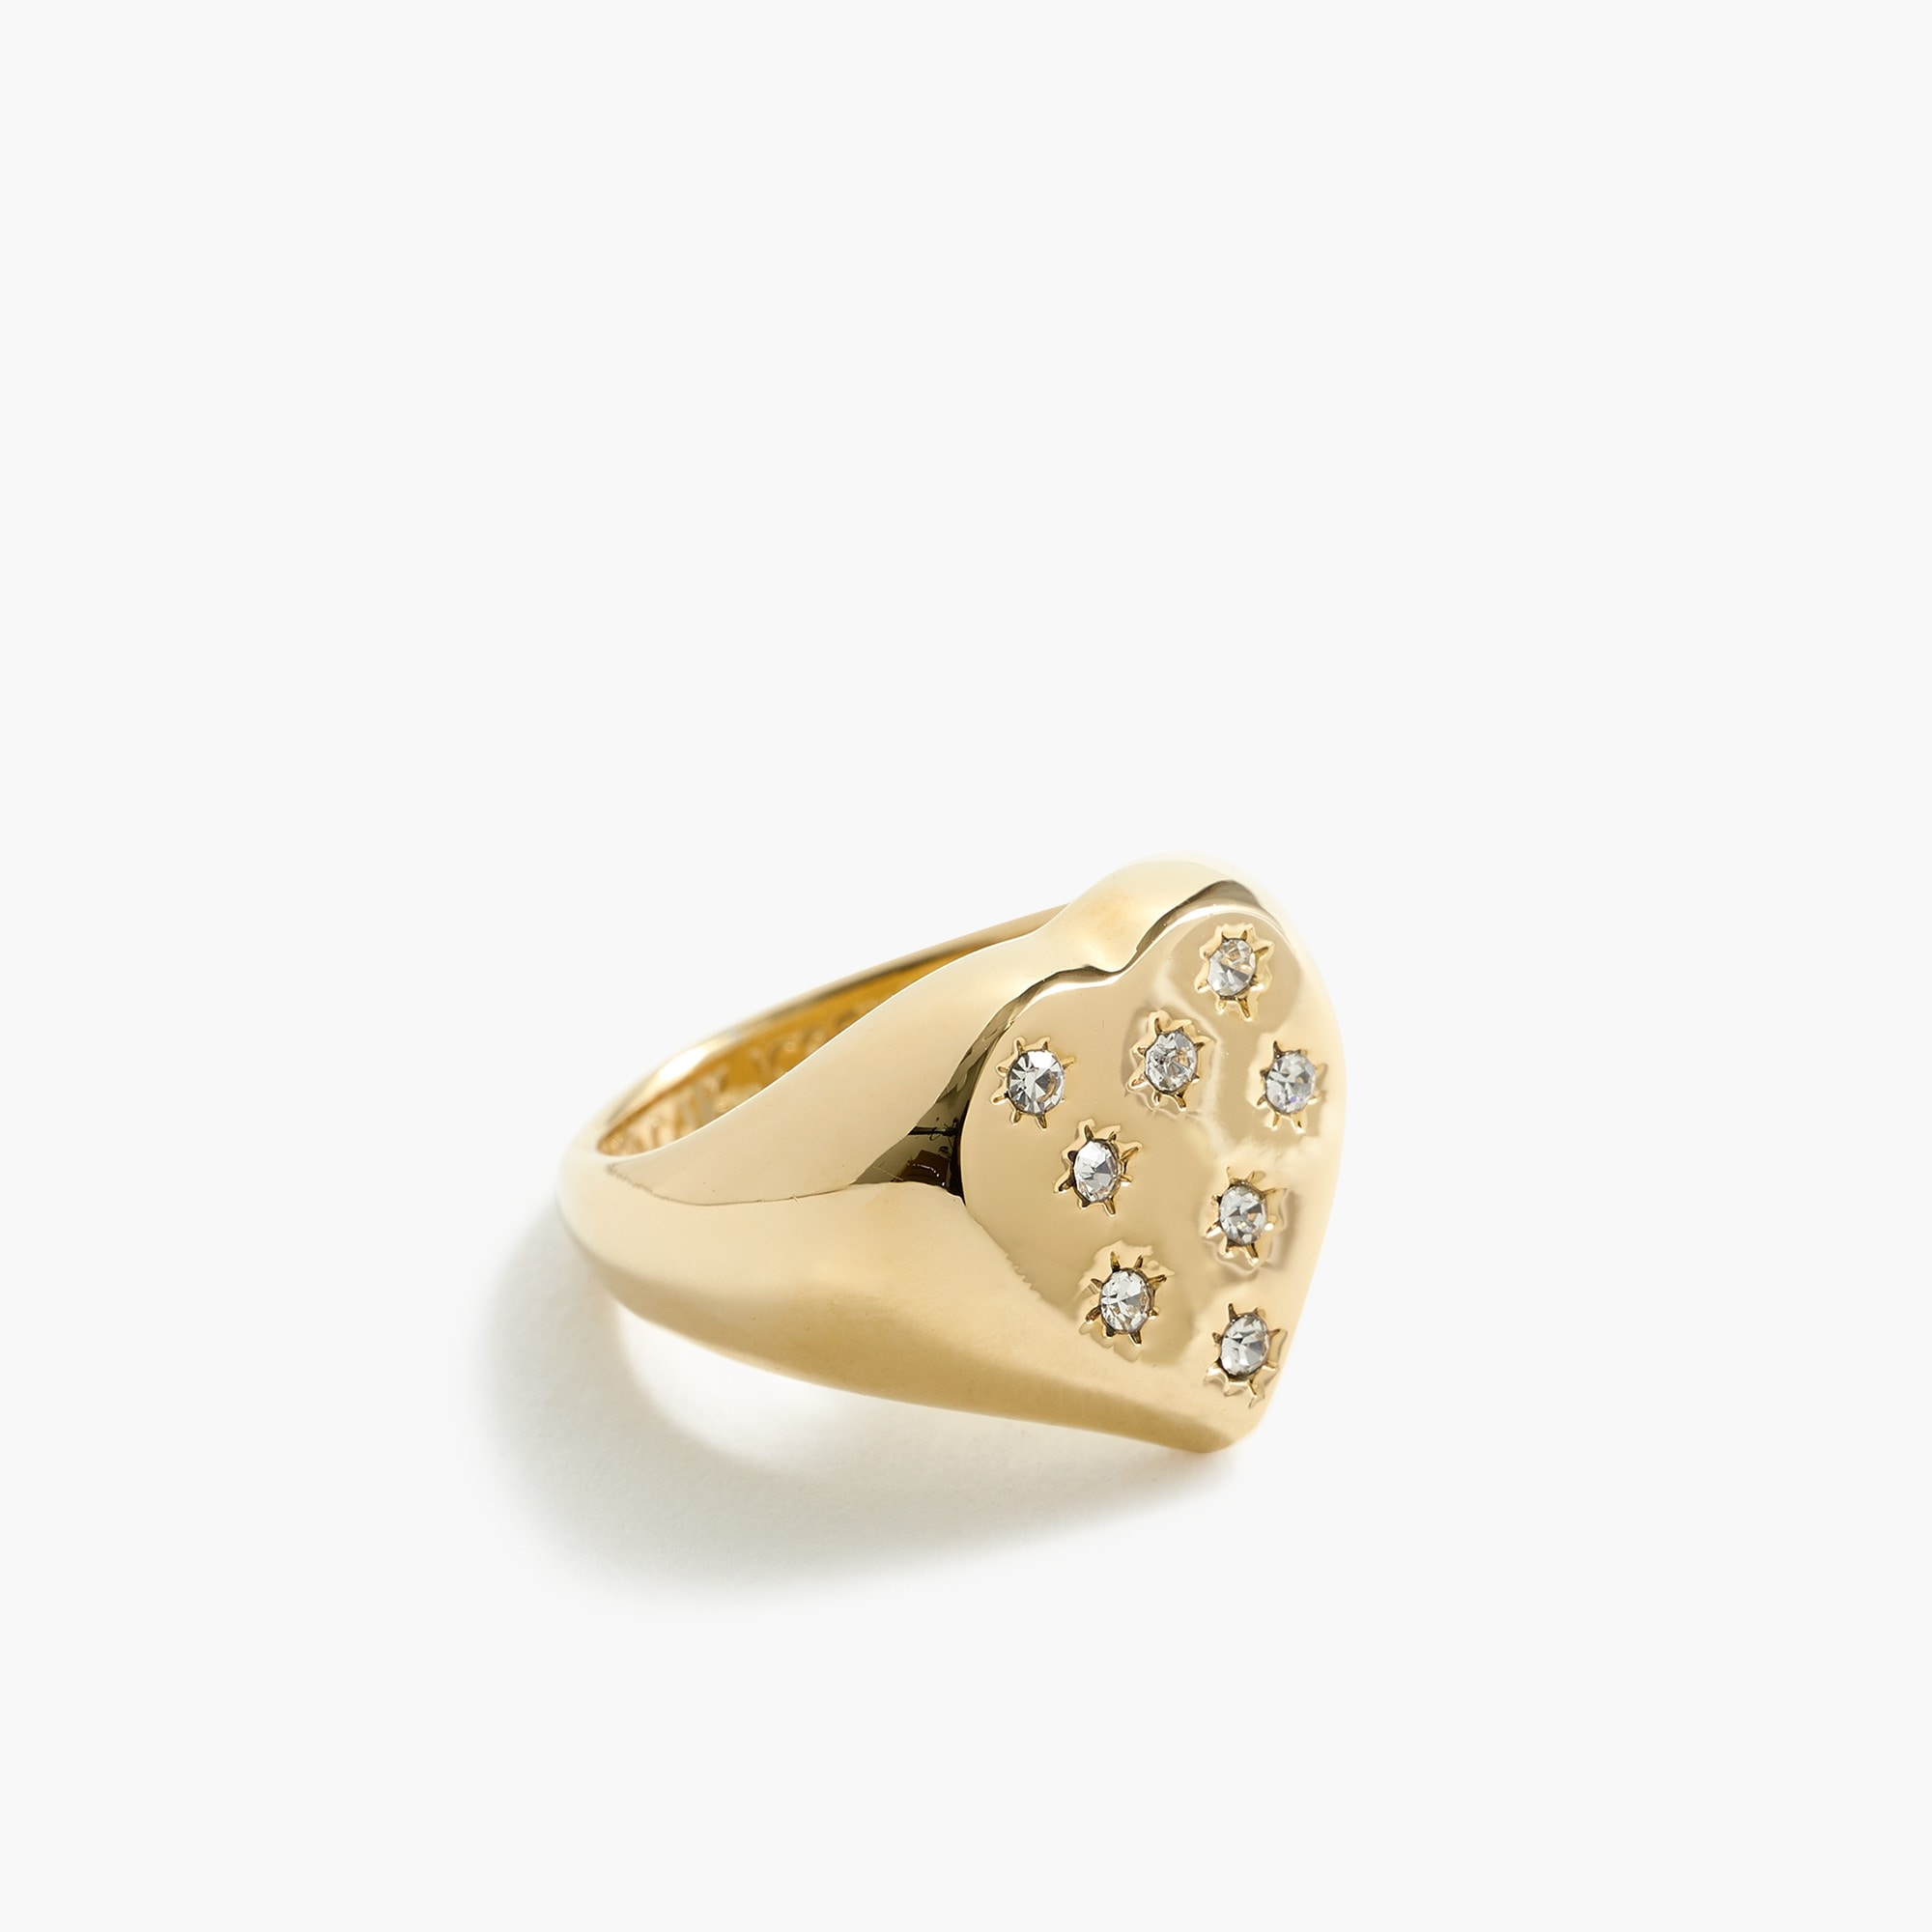 Image 1 for Alison Lou X J.Crew heart-shaped ring